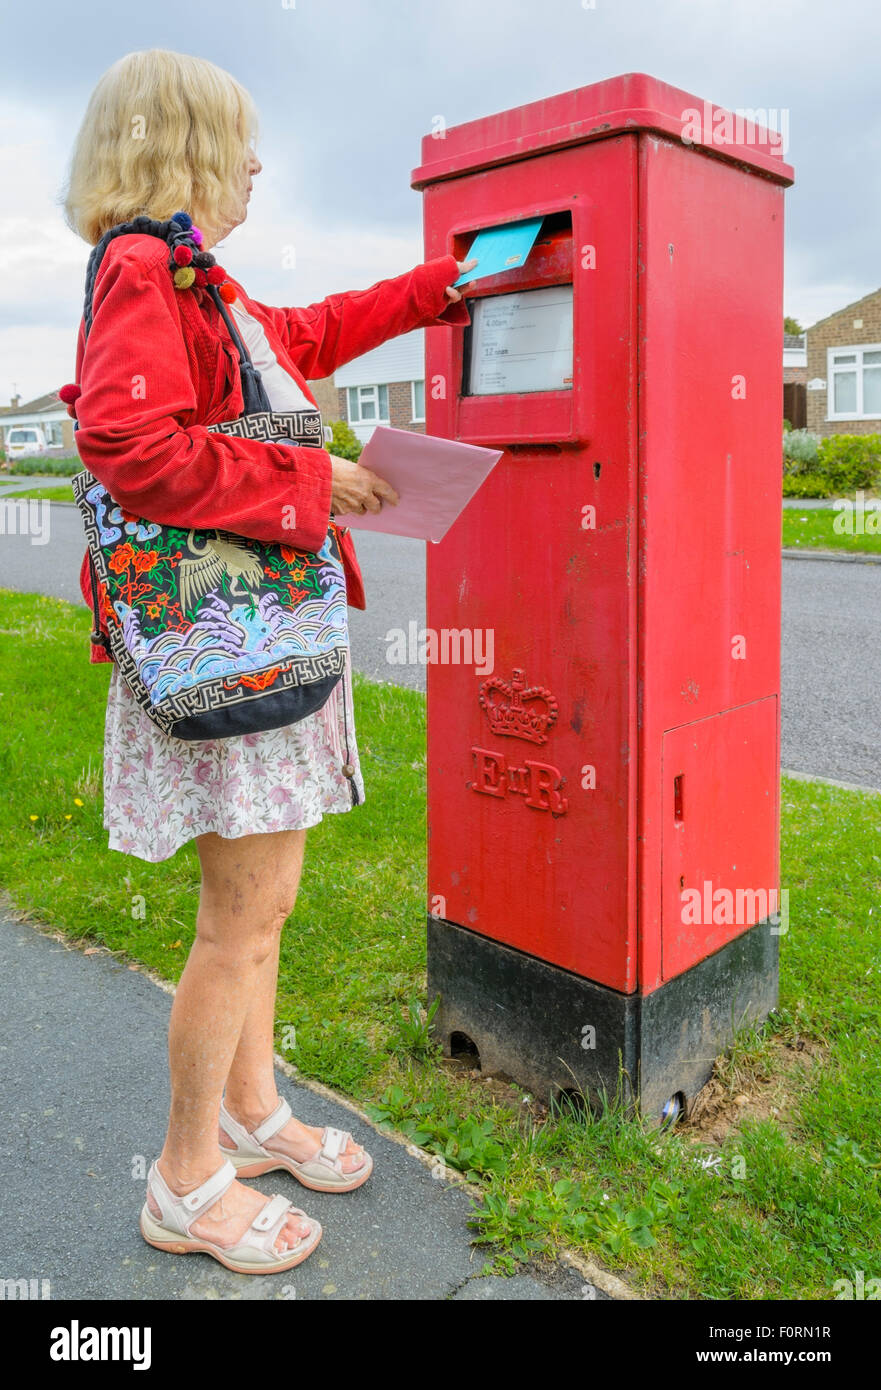 Senior woman mailing a letter in a red rectangular letter box in England, UK, Posting letters. Posting a letter. Stock Photo